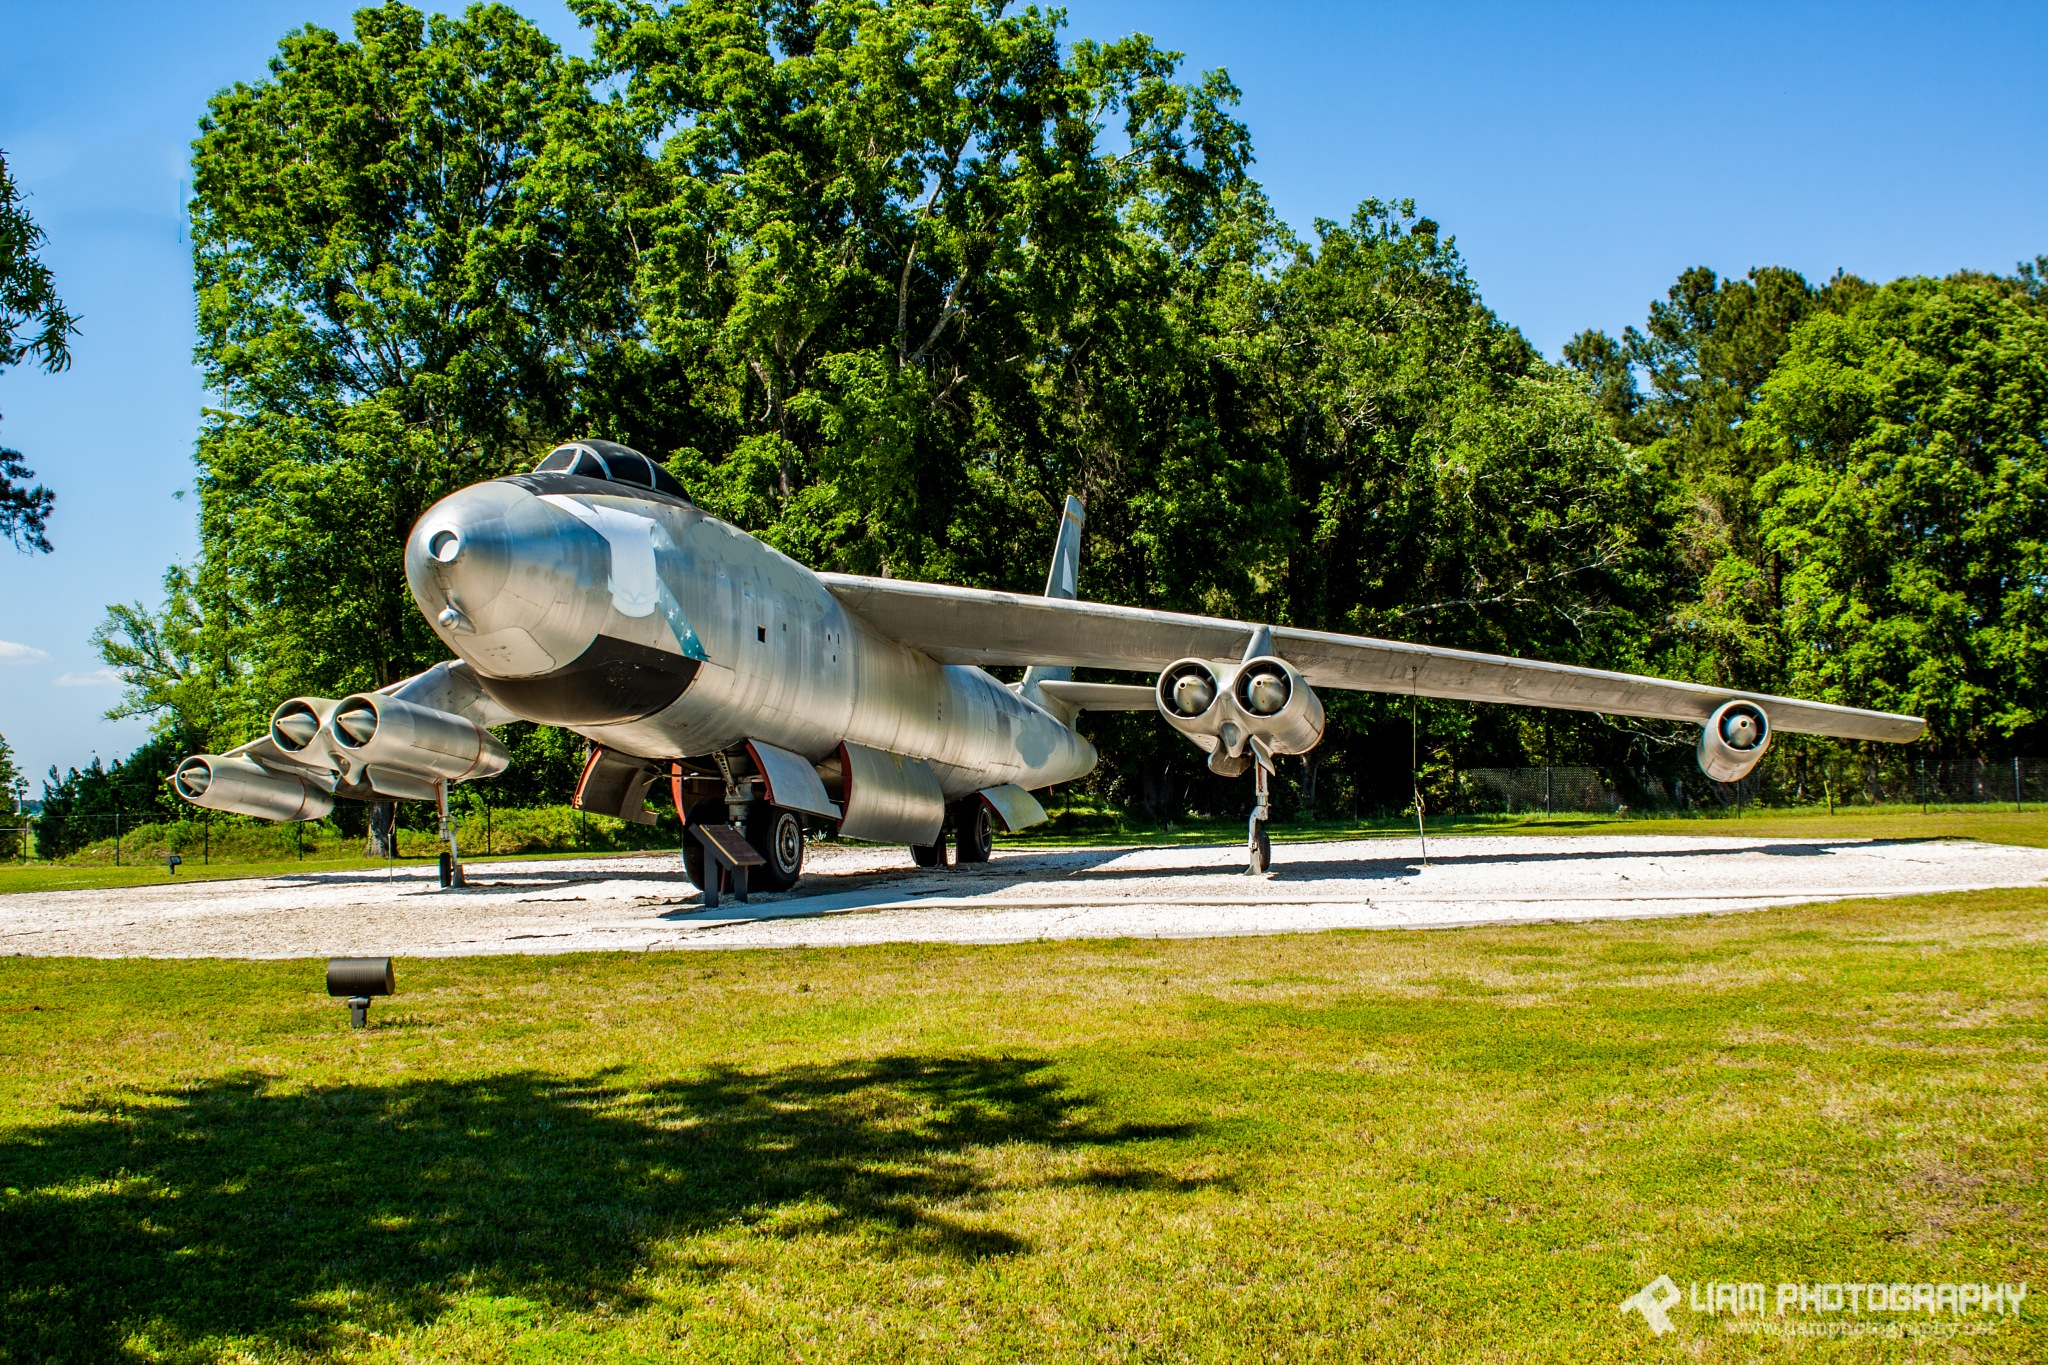 Old Silver Jet by Liam Photography